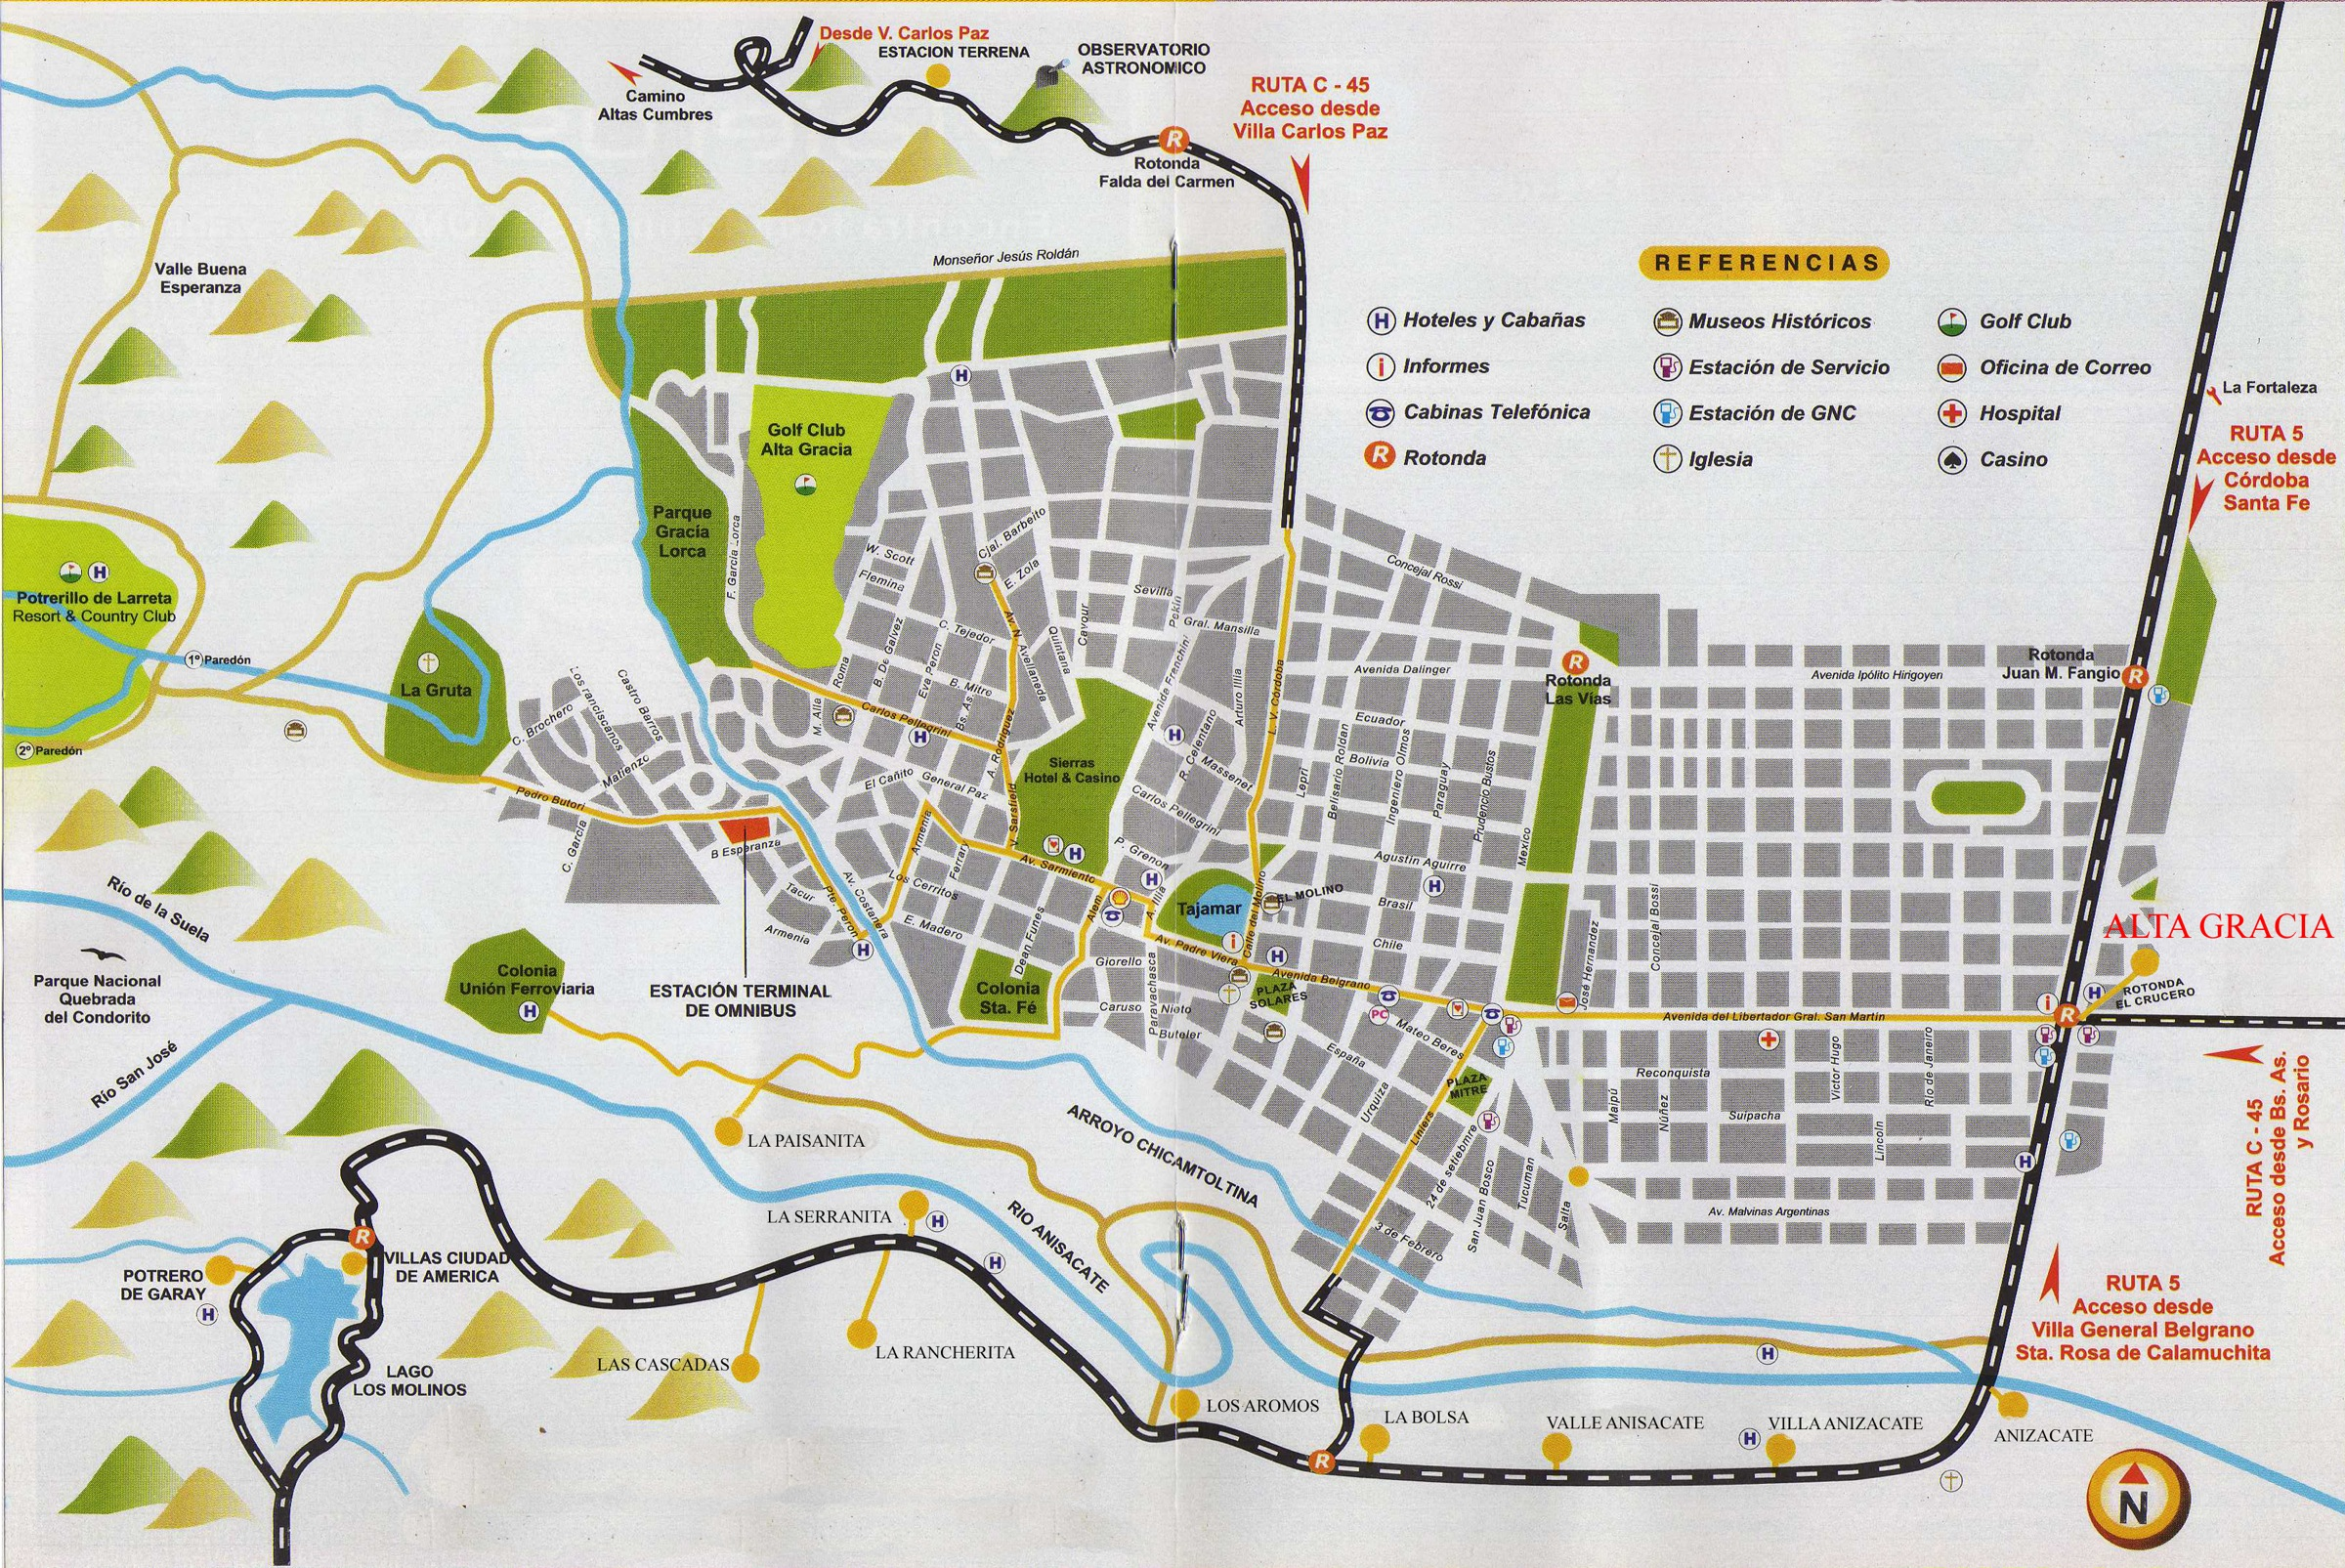 Alta Gracia Tourist Map Alta Gracia Cordoba Argentina mappery – Tourist Map of Argentina